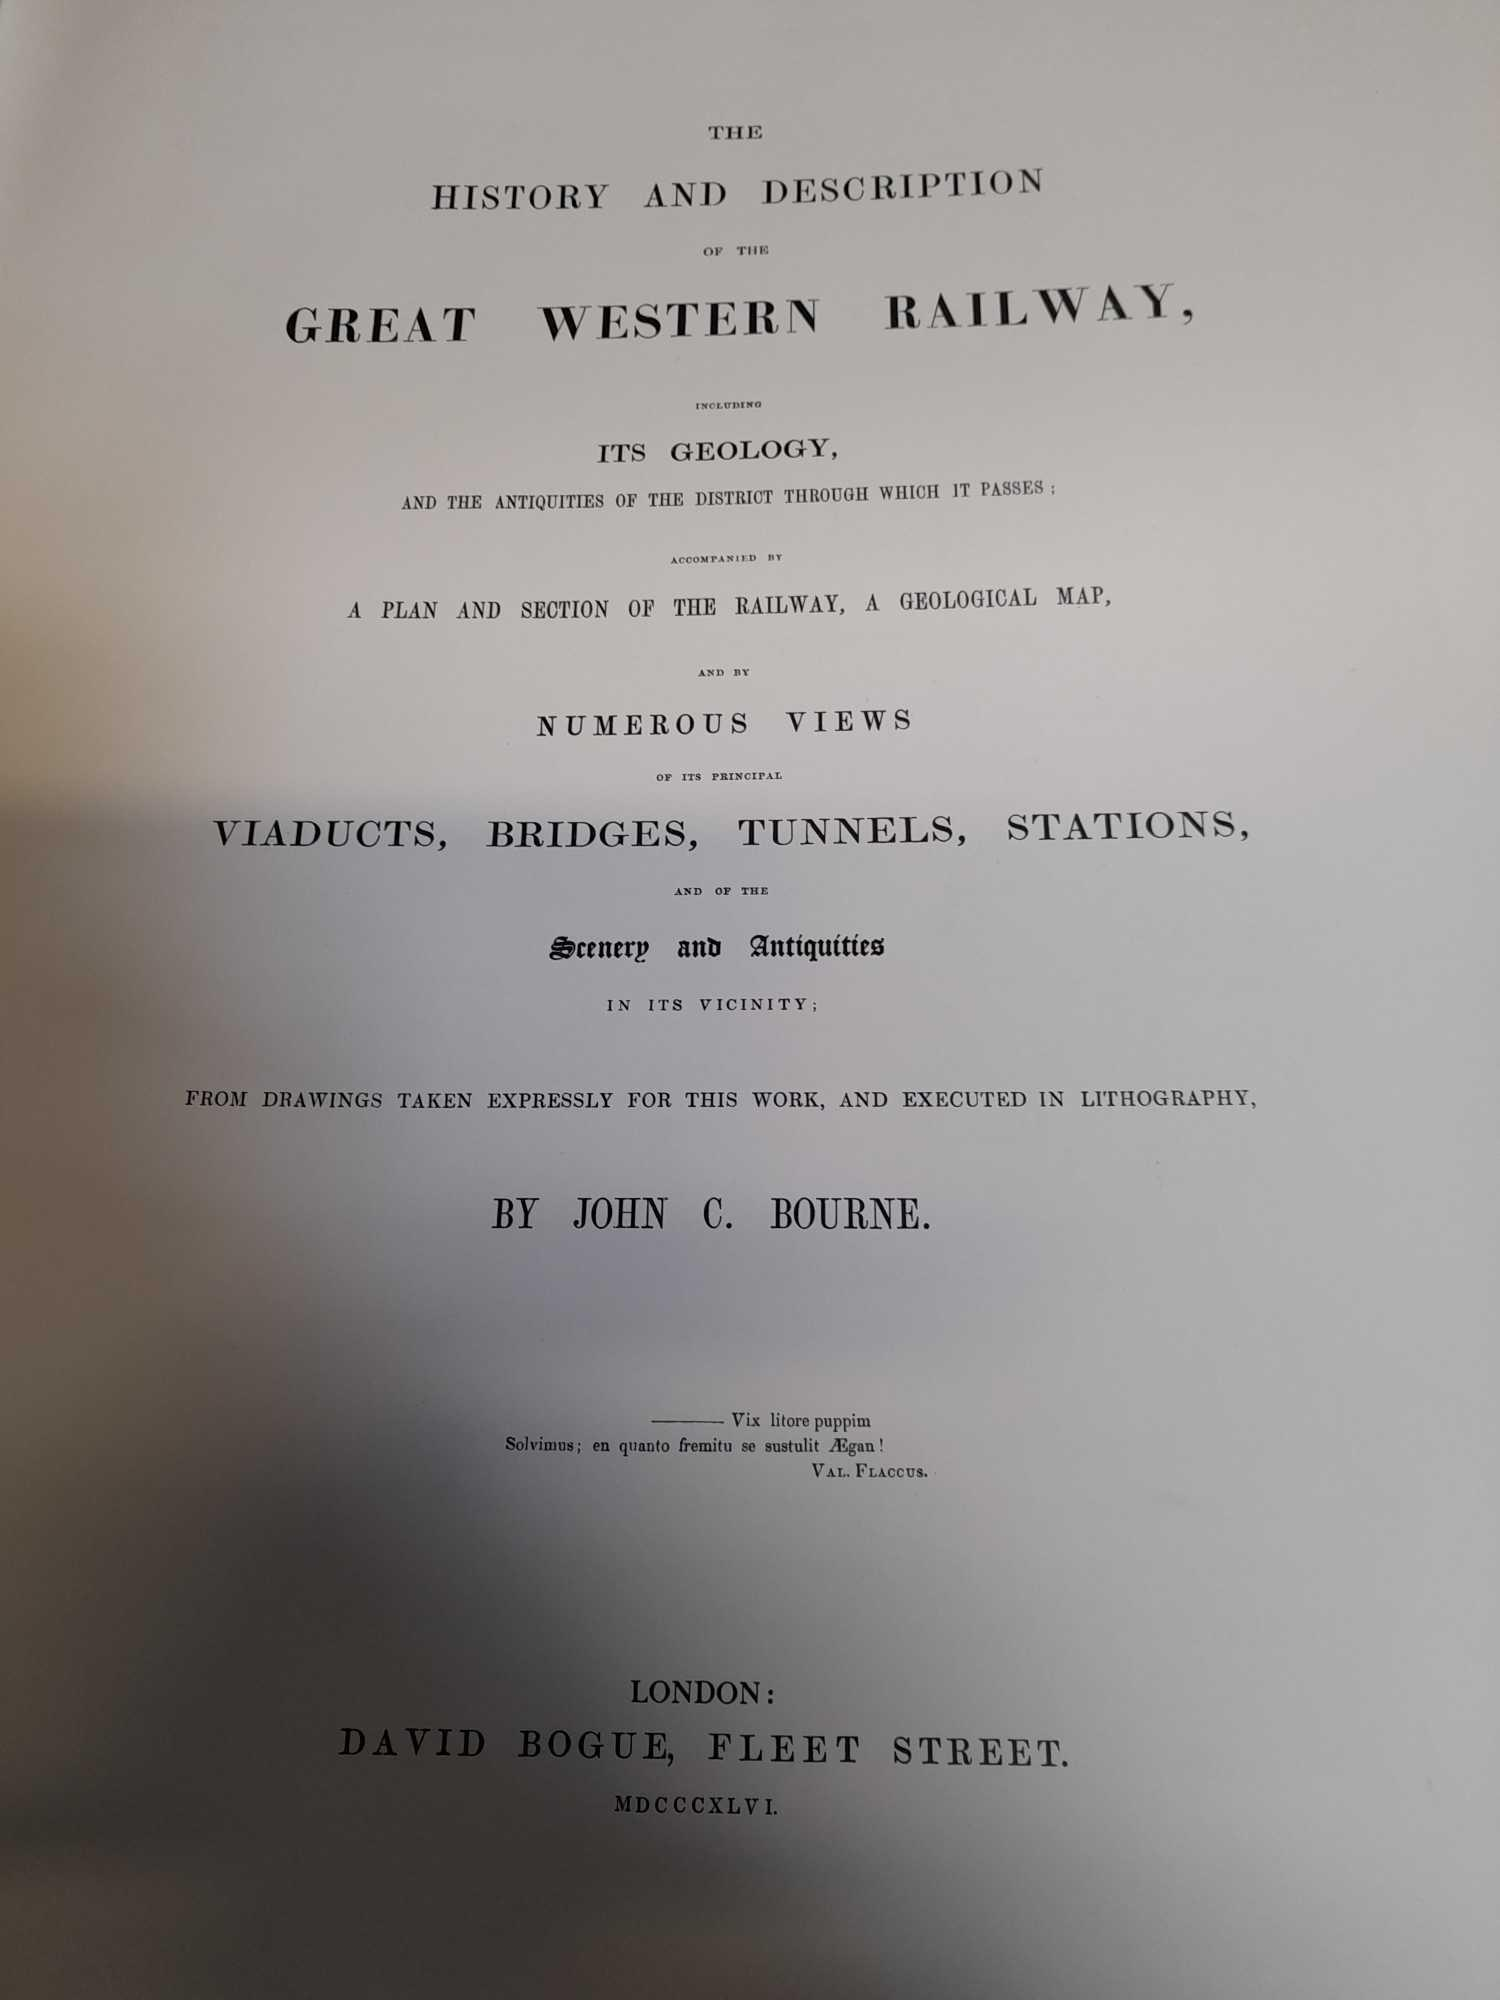 BOURNES GREAT WESTERN RAILWAY BOOK COPY 1 OF 500 - Image 4 of 9